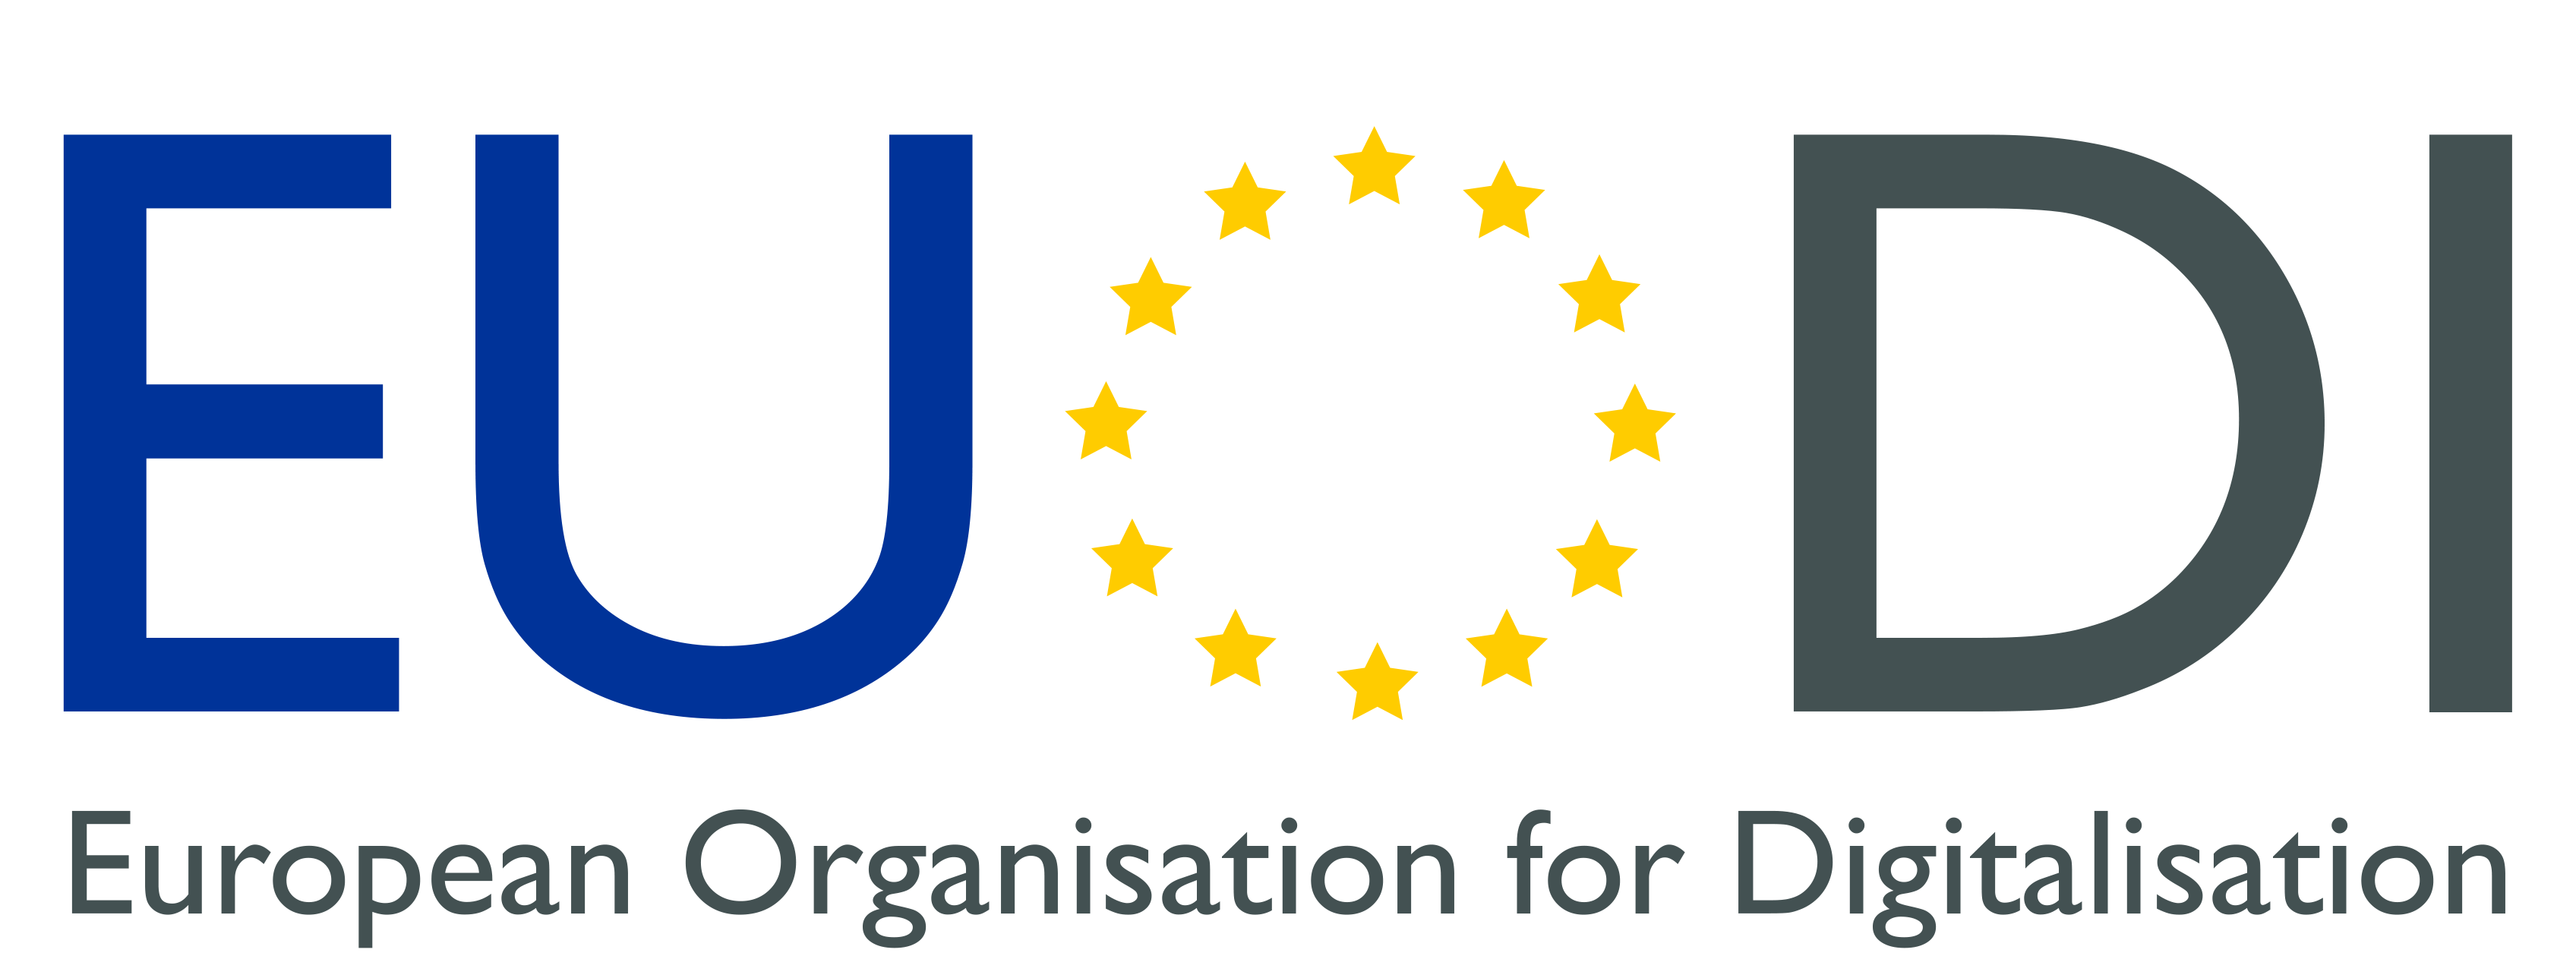 EUODI - European Organisation for Digitalisation